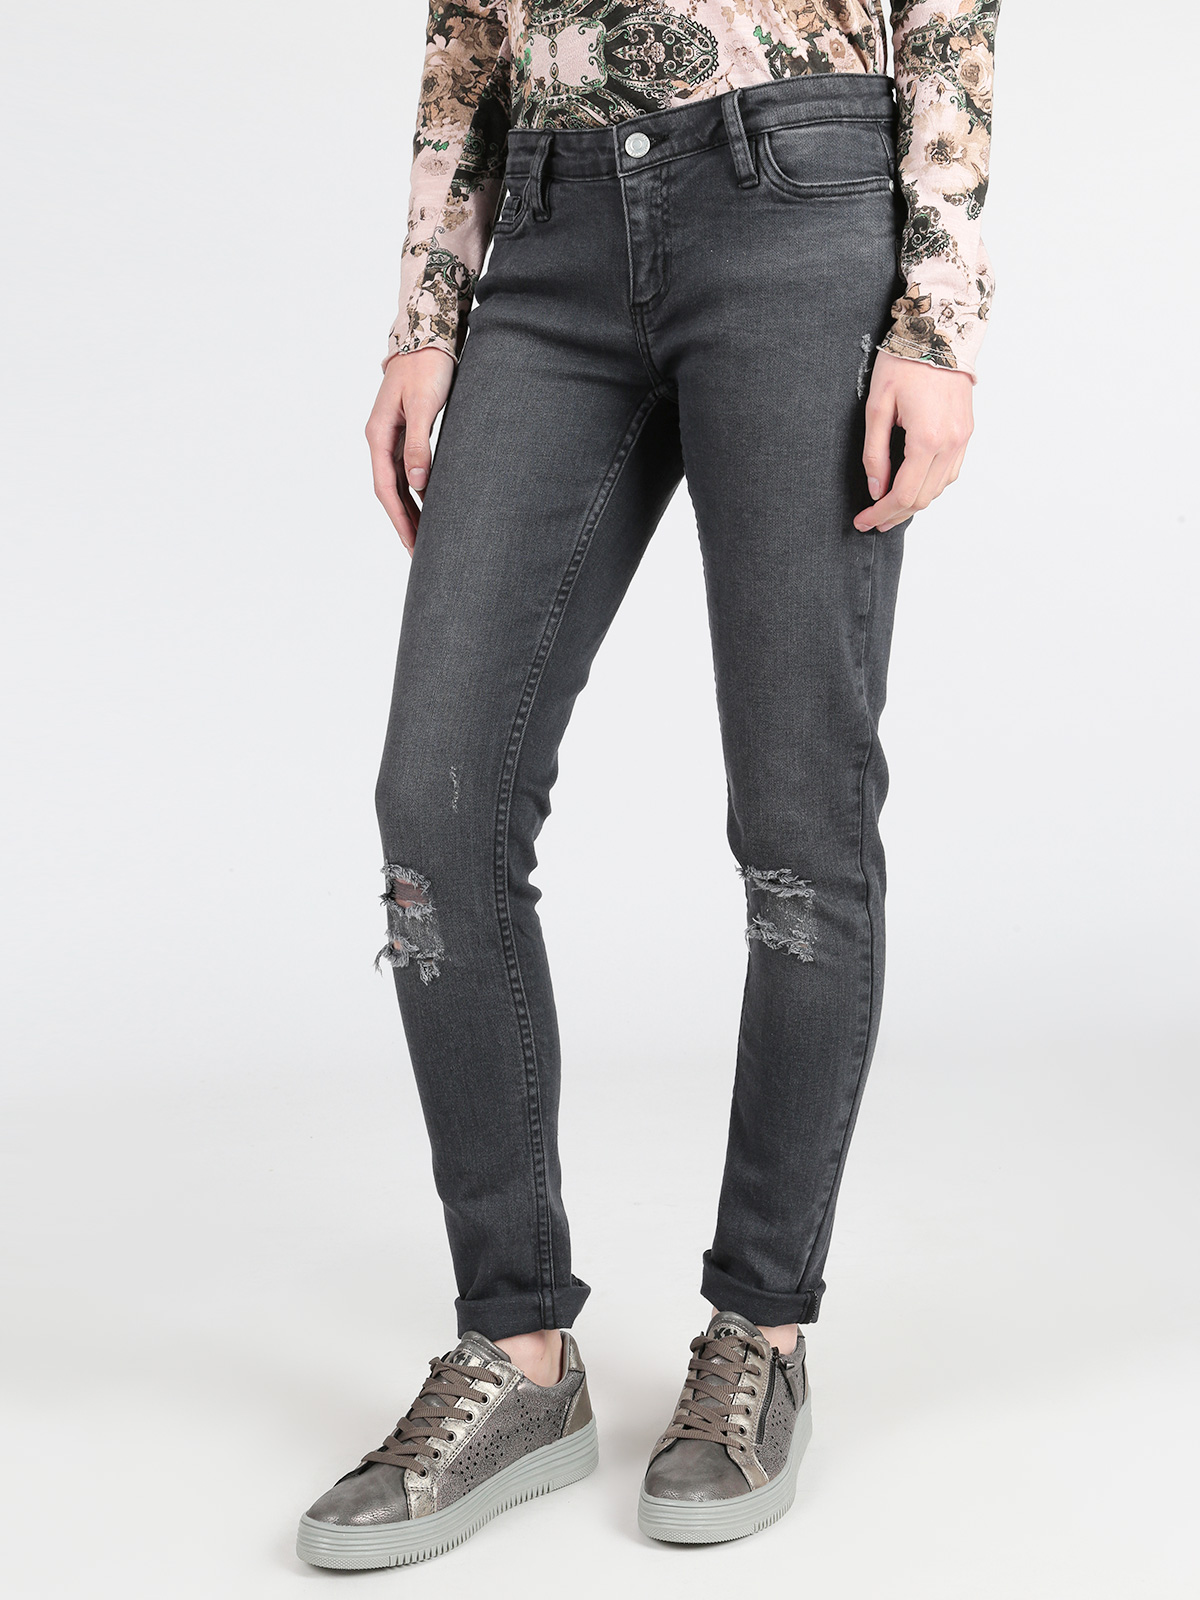 Jeans Woman Elastic Slim Pencil Spring Ripped Jenas